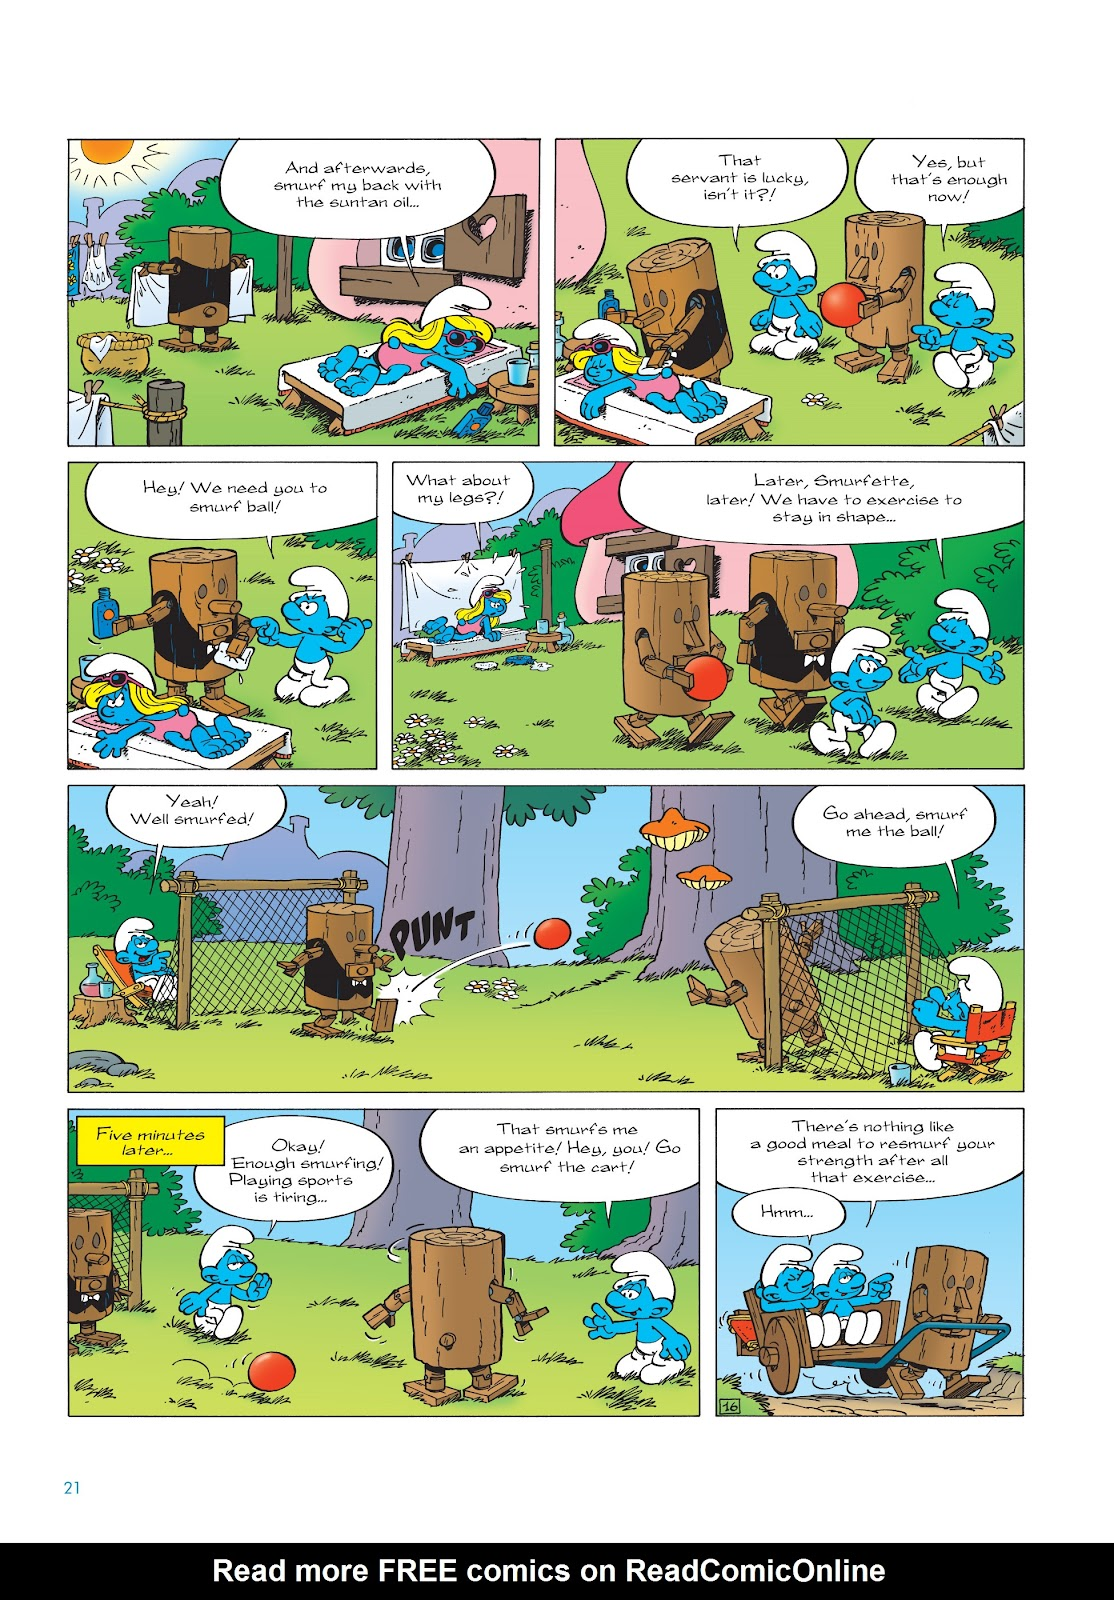 Read online The Smurfs comic -  Issue #23 - 21